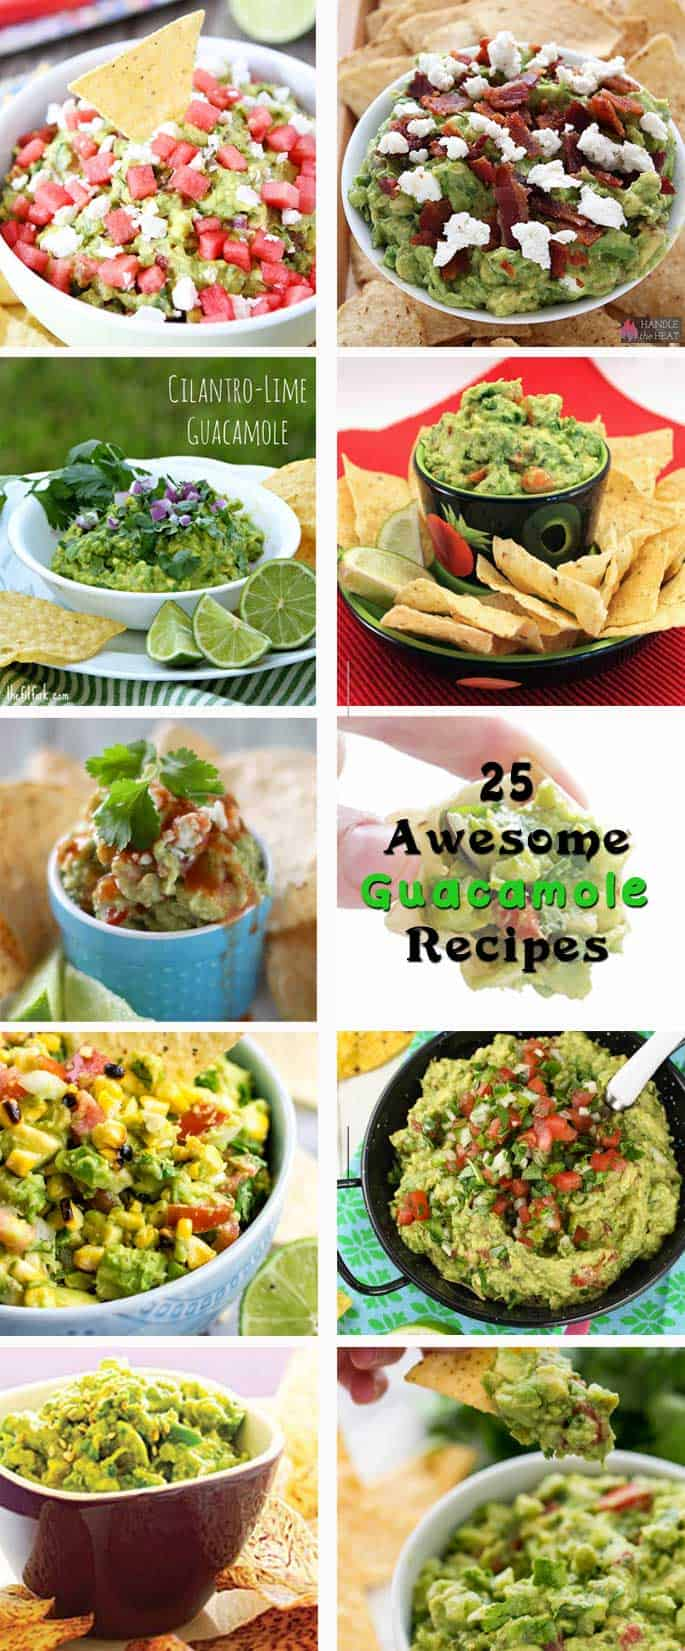 25 Awesome Guacamole Recipes | 2 Cookin Mamas A roundup of the best guacamole recipes from watermelon feta to classic to Sake Soy & everything in-between. #recipes #appetizers